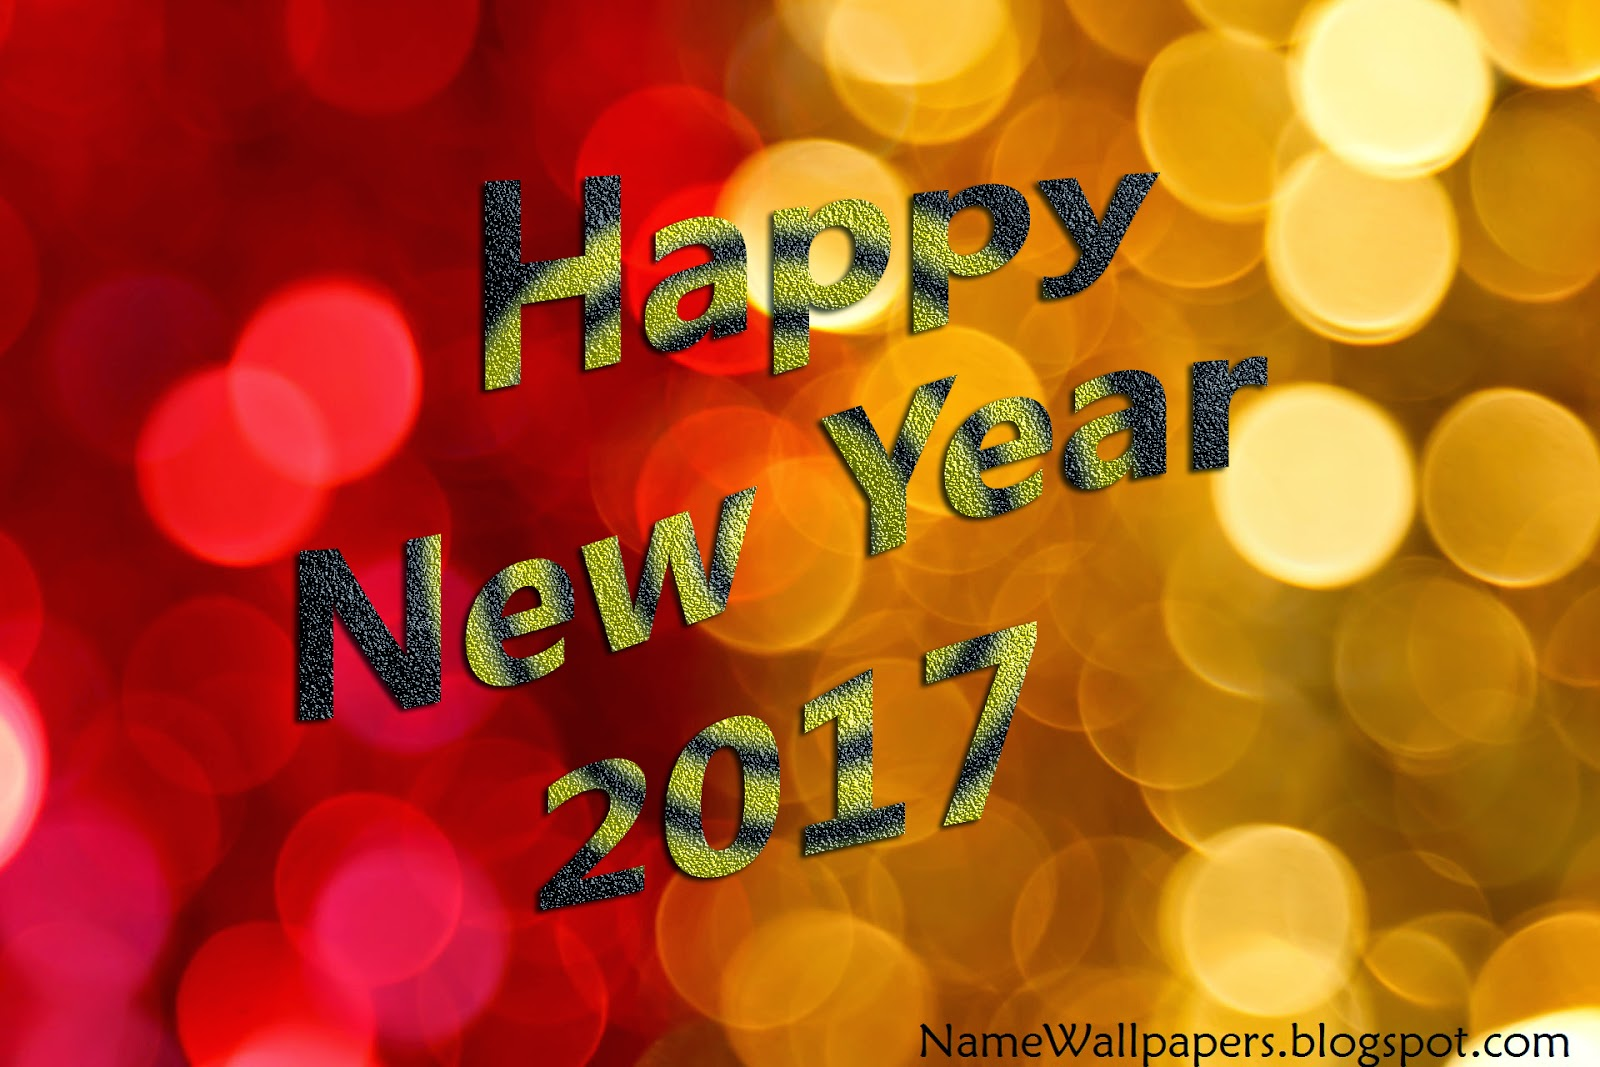 Wallpaper download new 2017 - Happy New Year Hot Pictures Images Photos Hd Wallpapers Animated Gif 2017